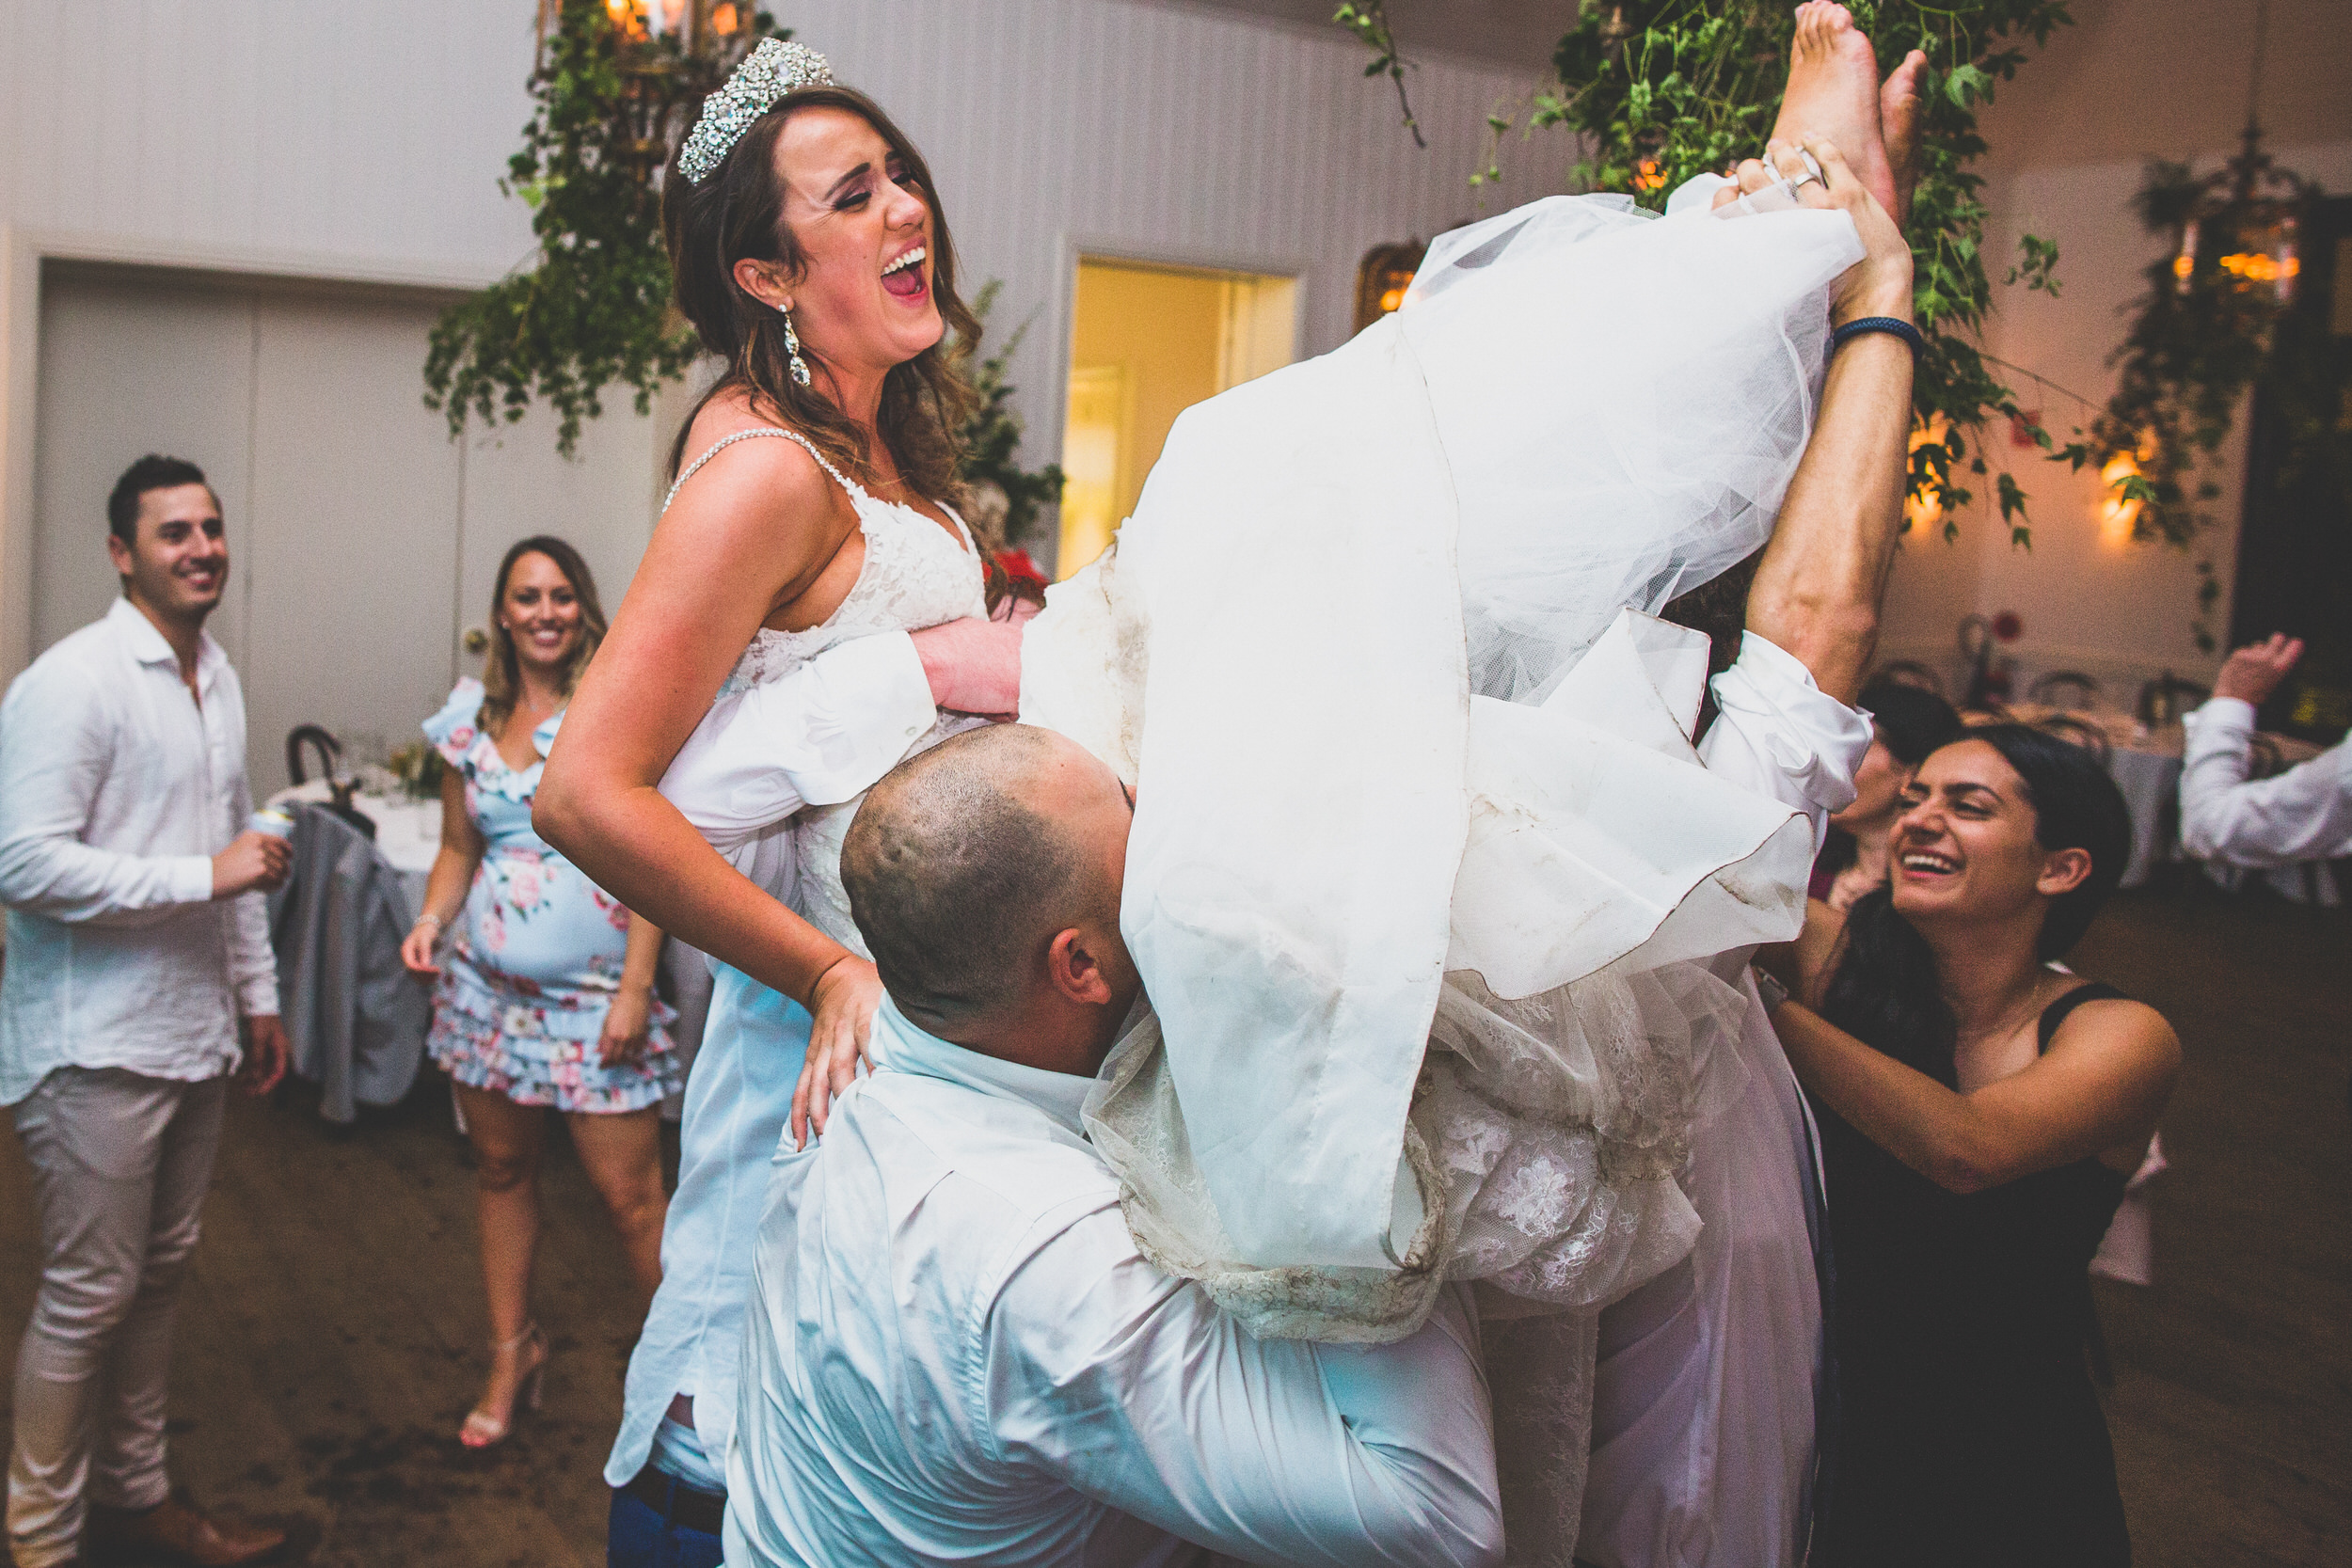 Wedding guests lift the bride and walk around with her!